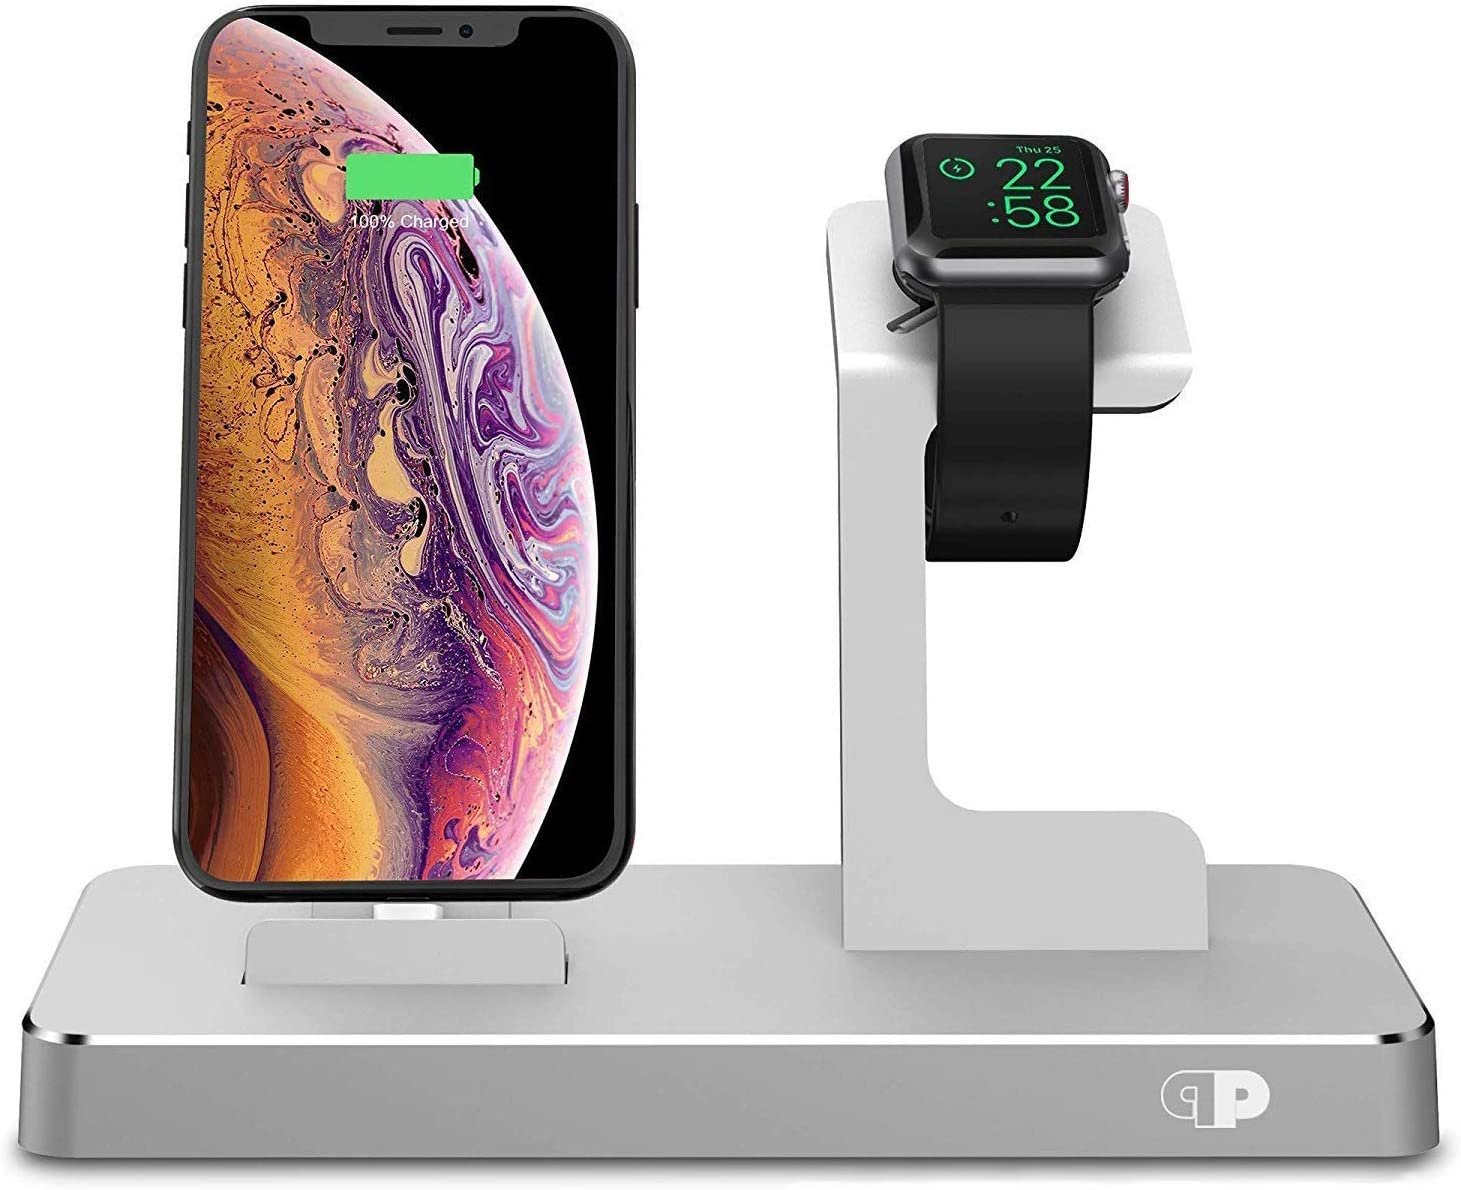 PRESS PLAY Charging Dock for Apple Watch & iPhone (Apple Certified), ONEDock Power Station w/Built-in Original Apple Lightning Connector for Docking, Made for Series, 5,4,3,2,1, AirPods, iPod